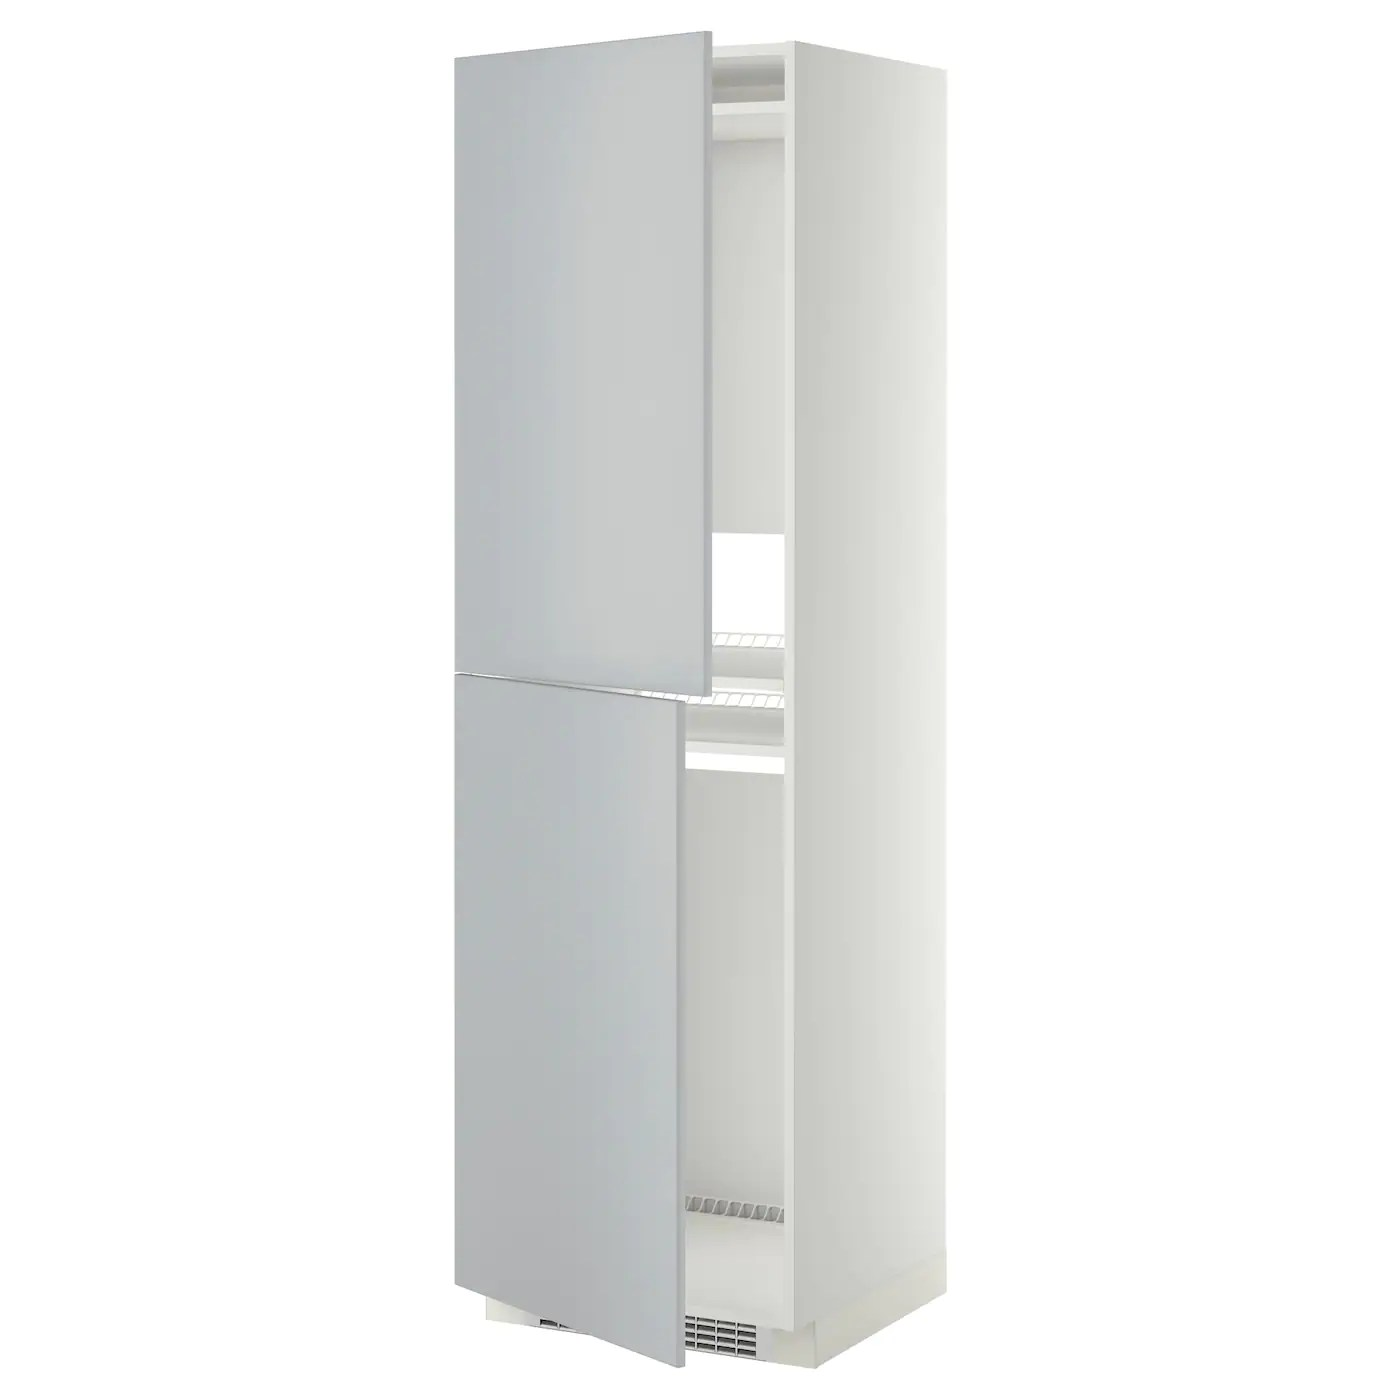 Umbauschrank Für Kühlschrank Metod High Cabinet For Fridge Freezer White Veddinge Grey